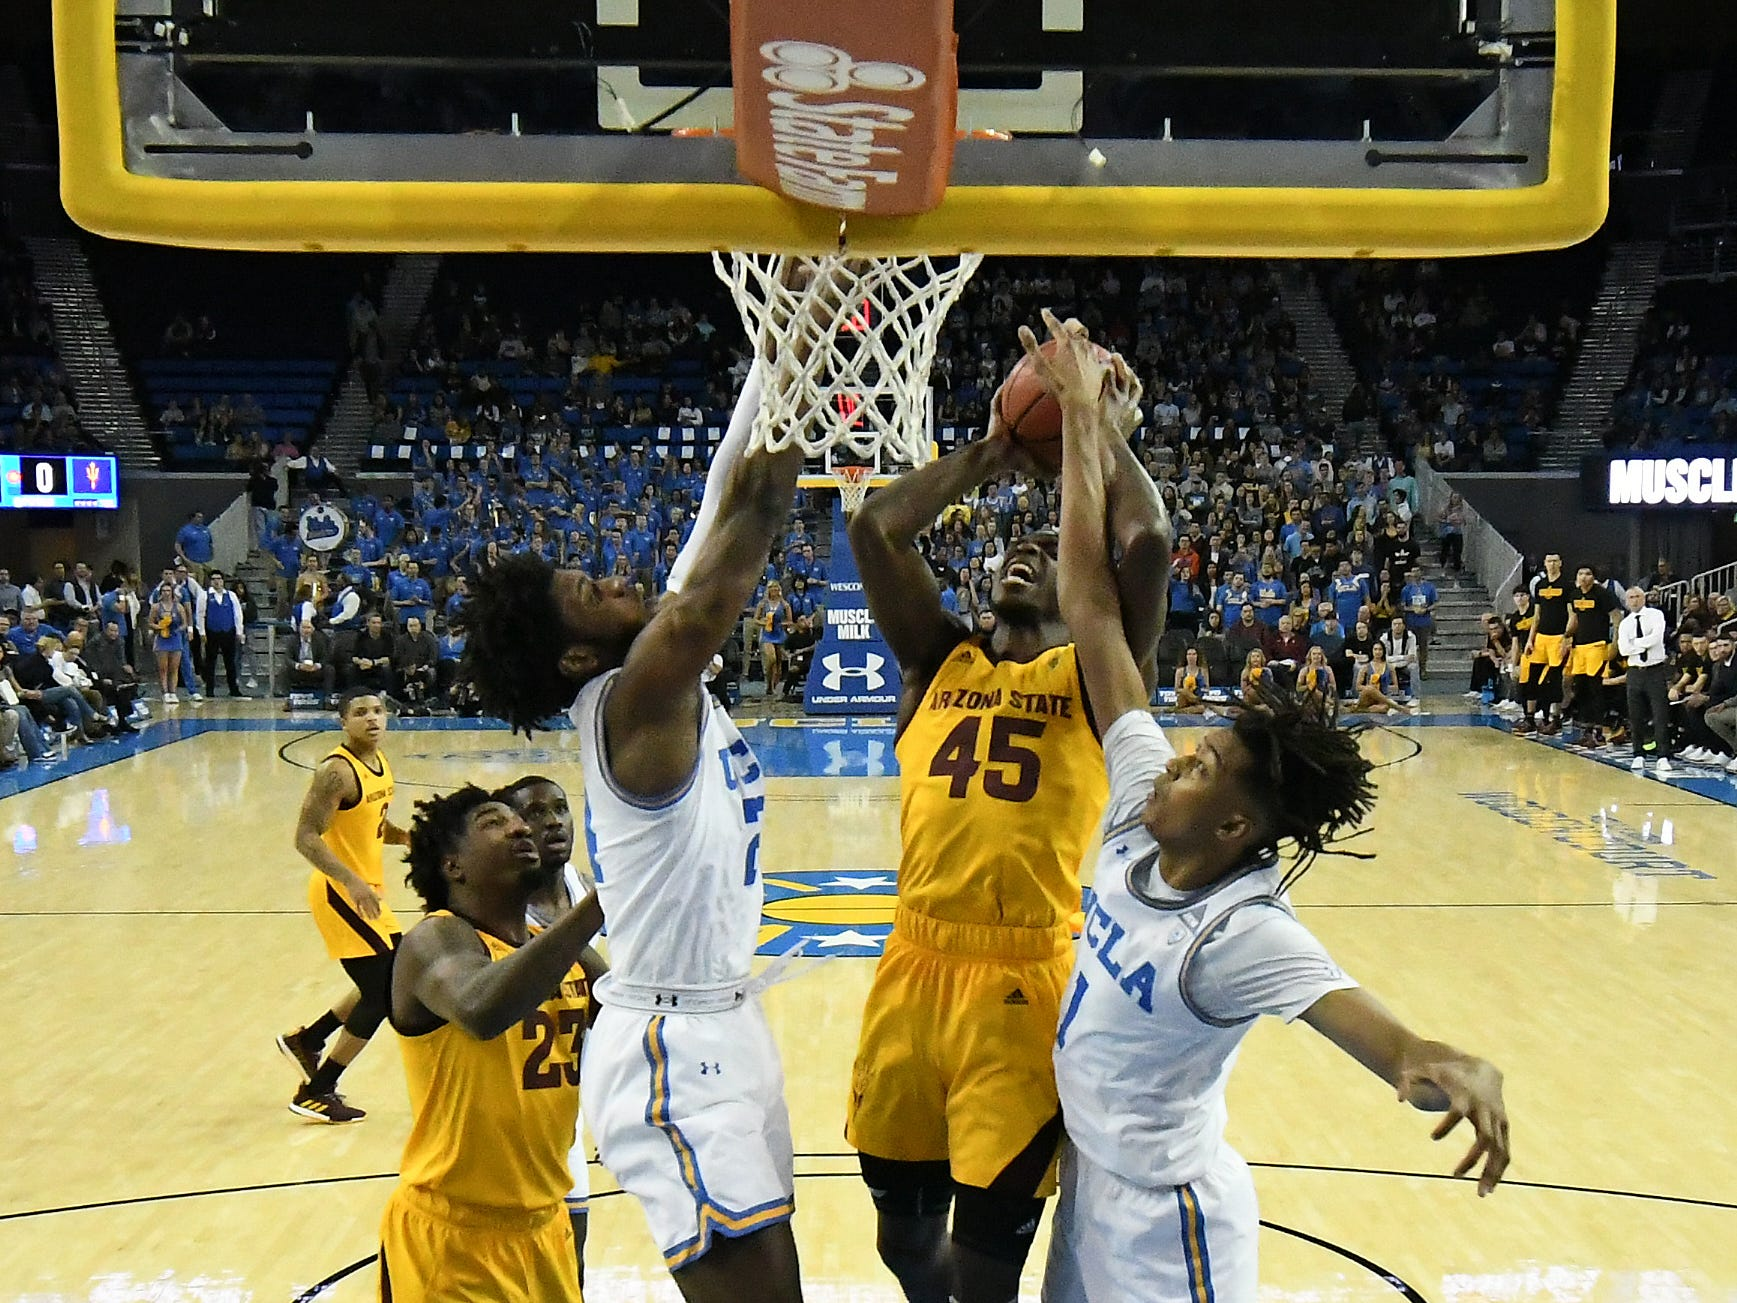 Jan 24, 2019; Los Angeles, CA, USA; Arizona State Sun Devils forward Zylan Cheatham (45) shoots between UCLA Bruins guard Jalen Hill (left) and center Moses Brown (1) during the first half at Pauley Pavilion. Mandatory Credit: Richard Mackson-USA TODAY Sports